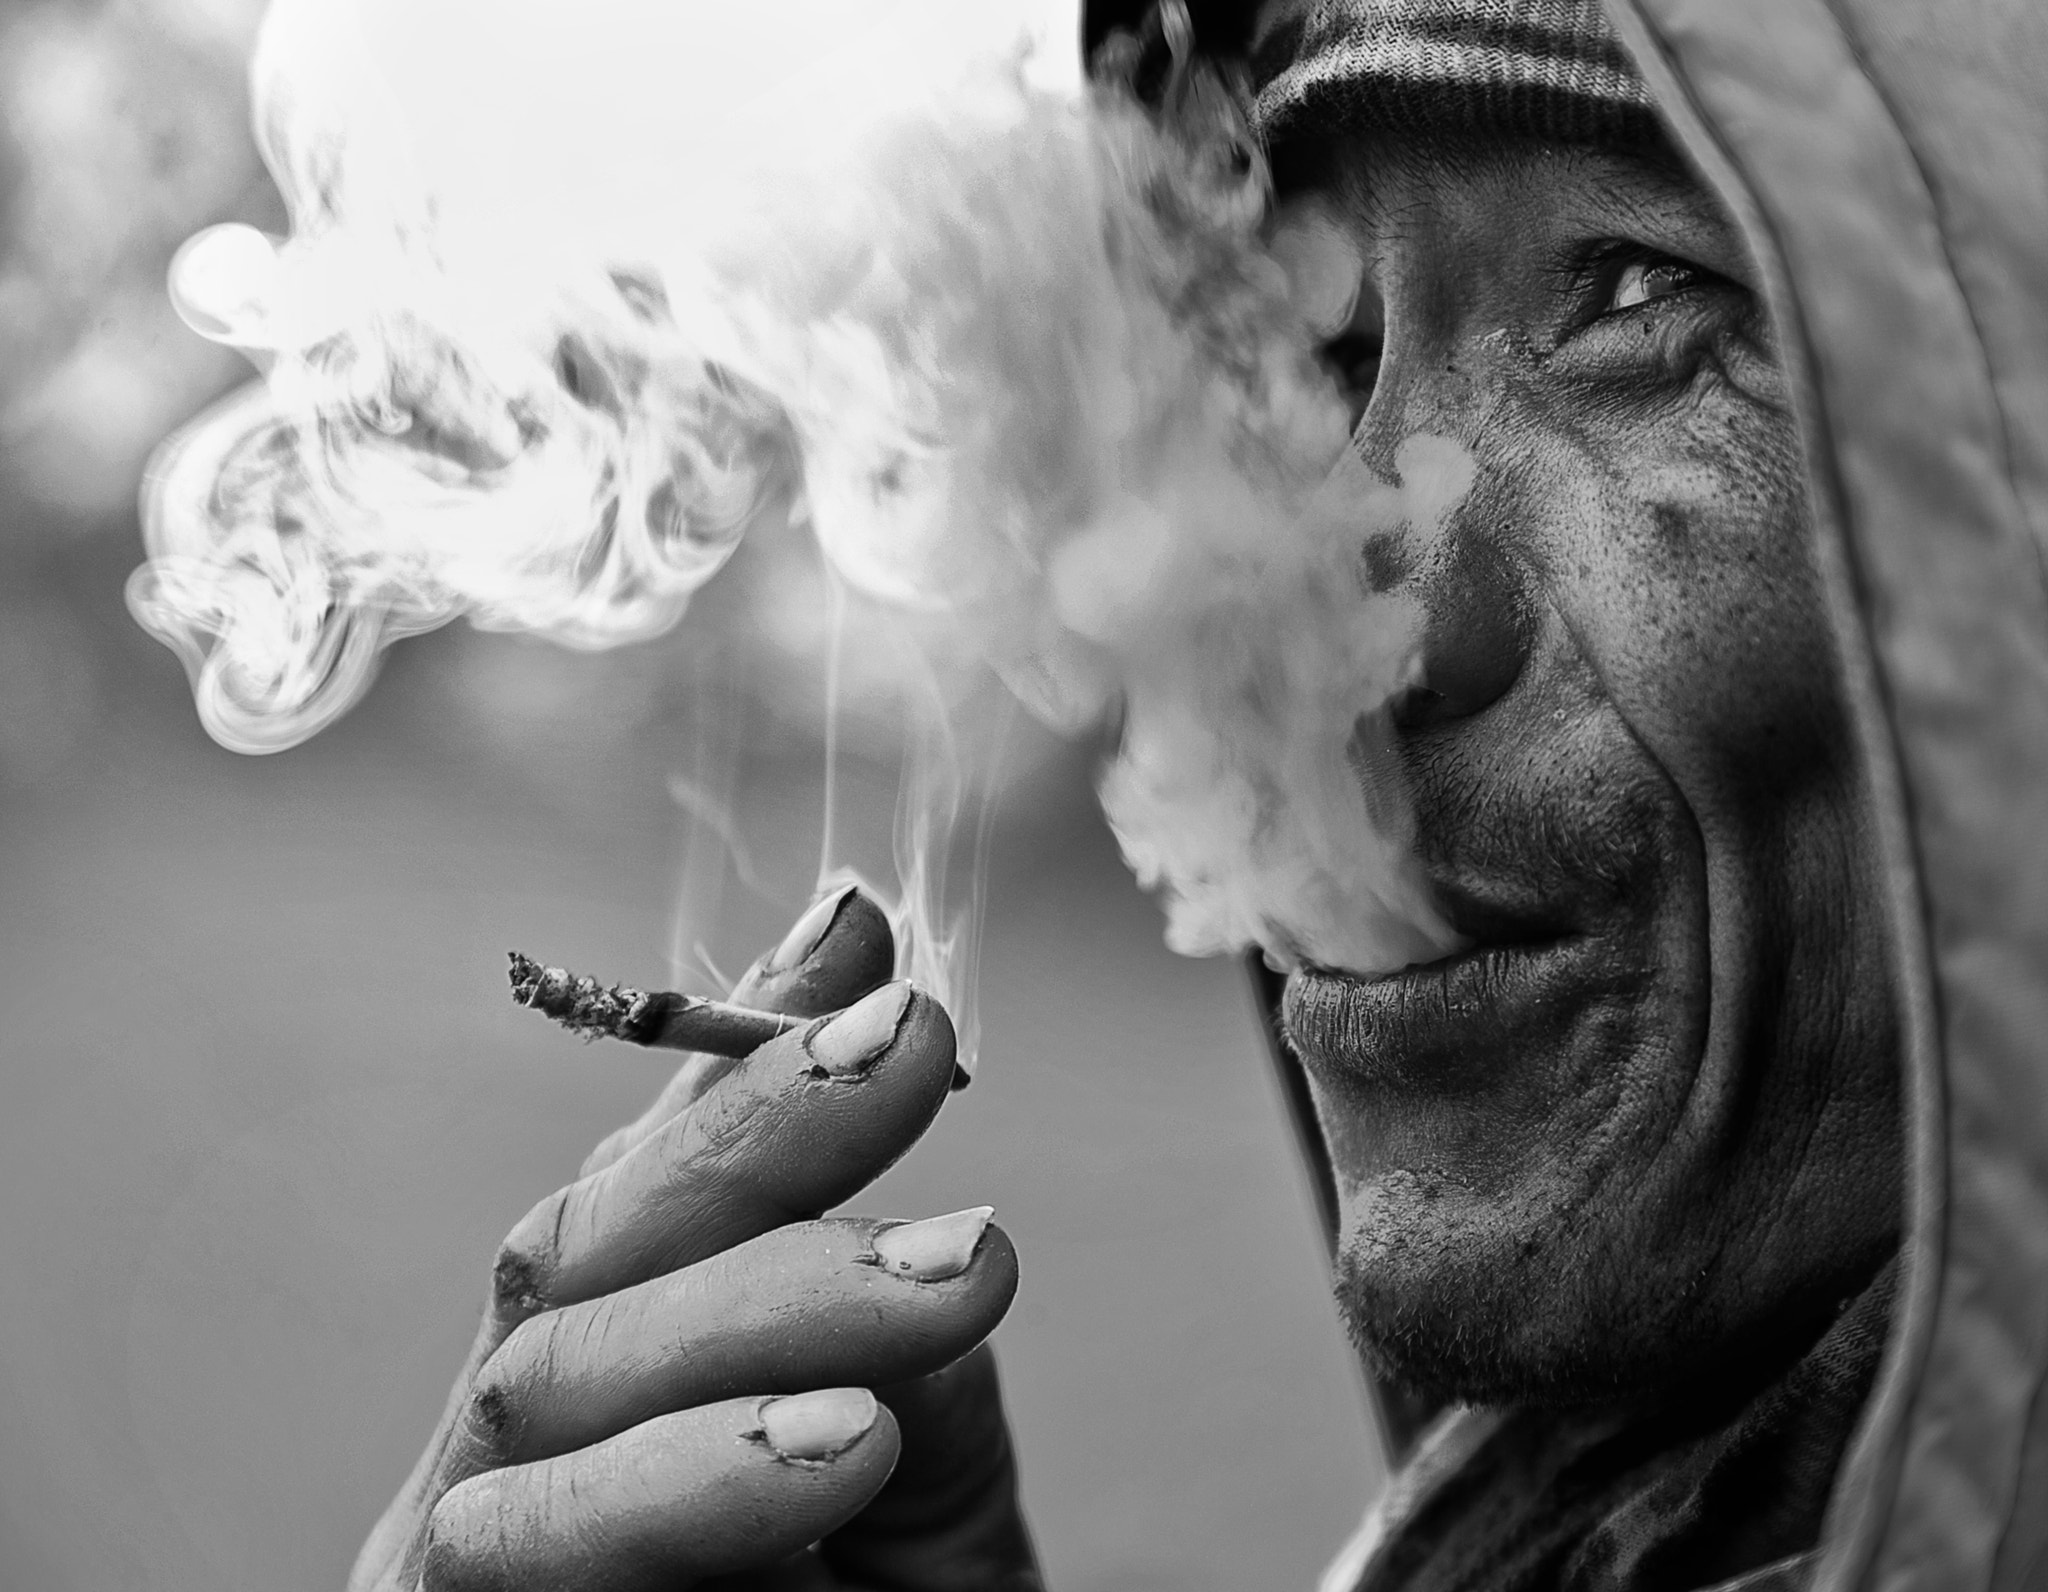 Photograph Exhaling Life by Jassi Oberai on 500px